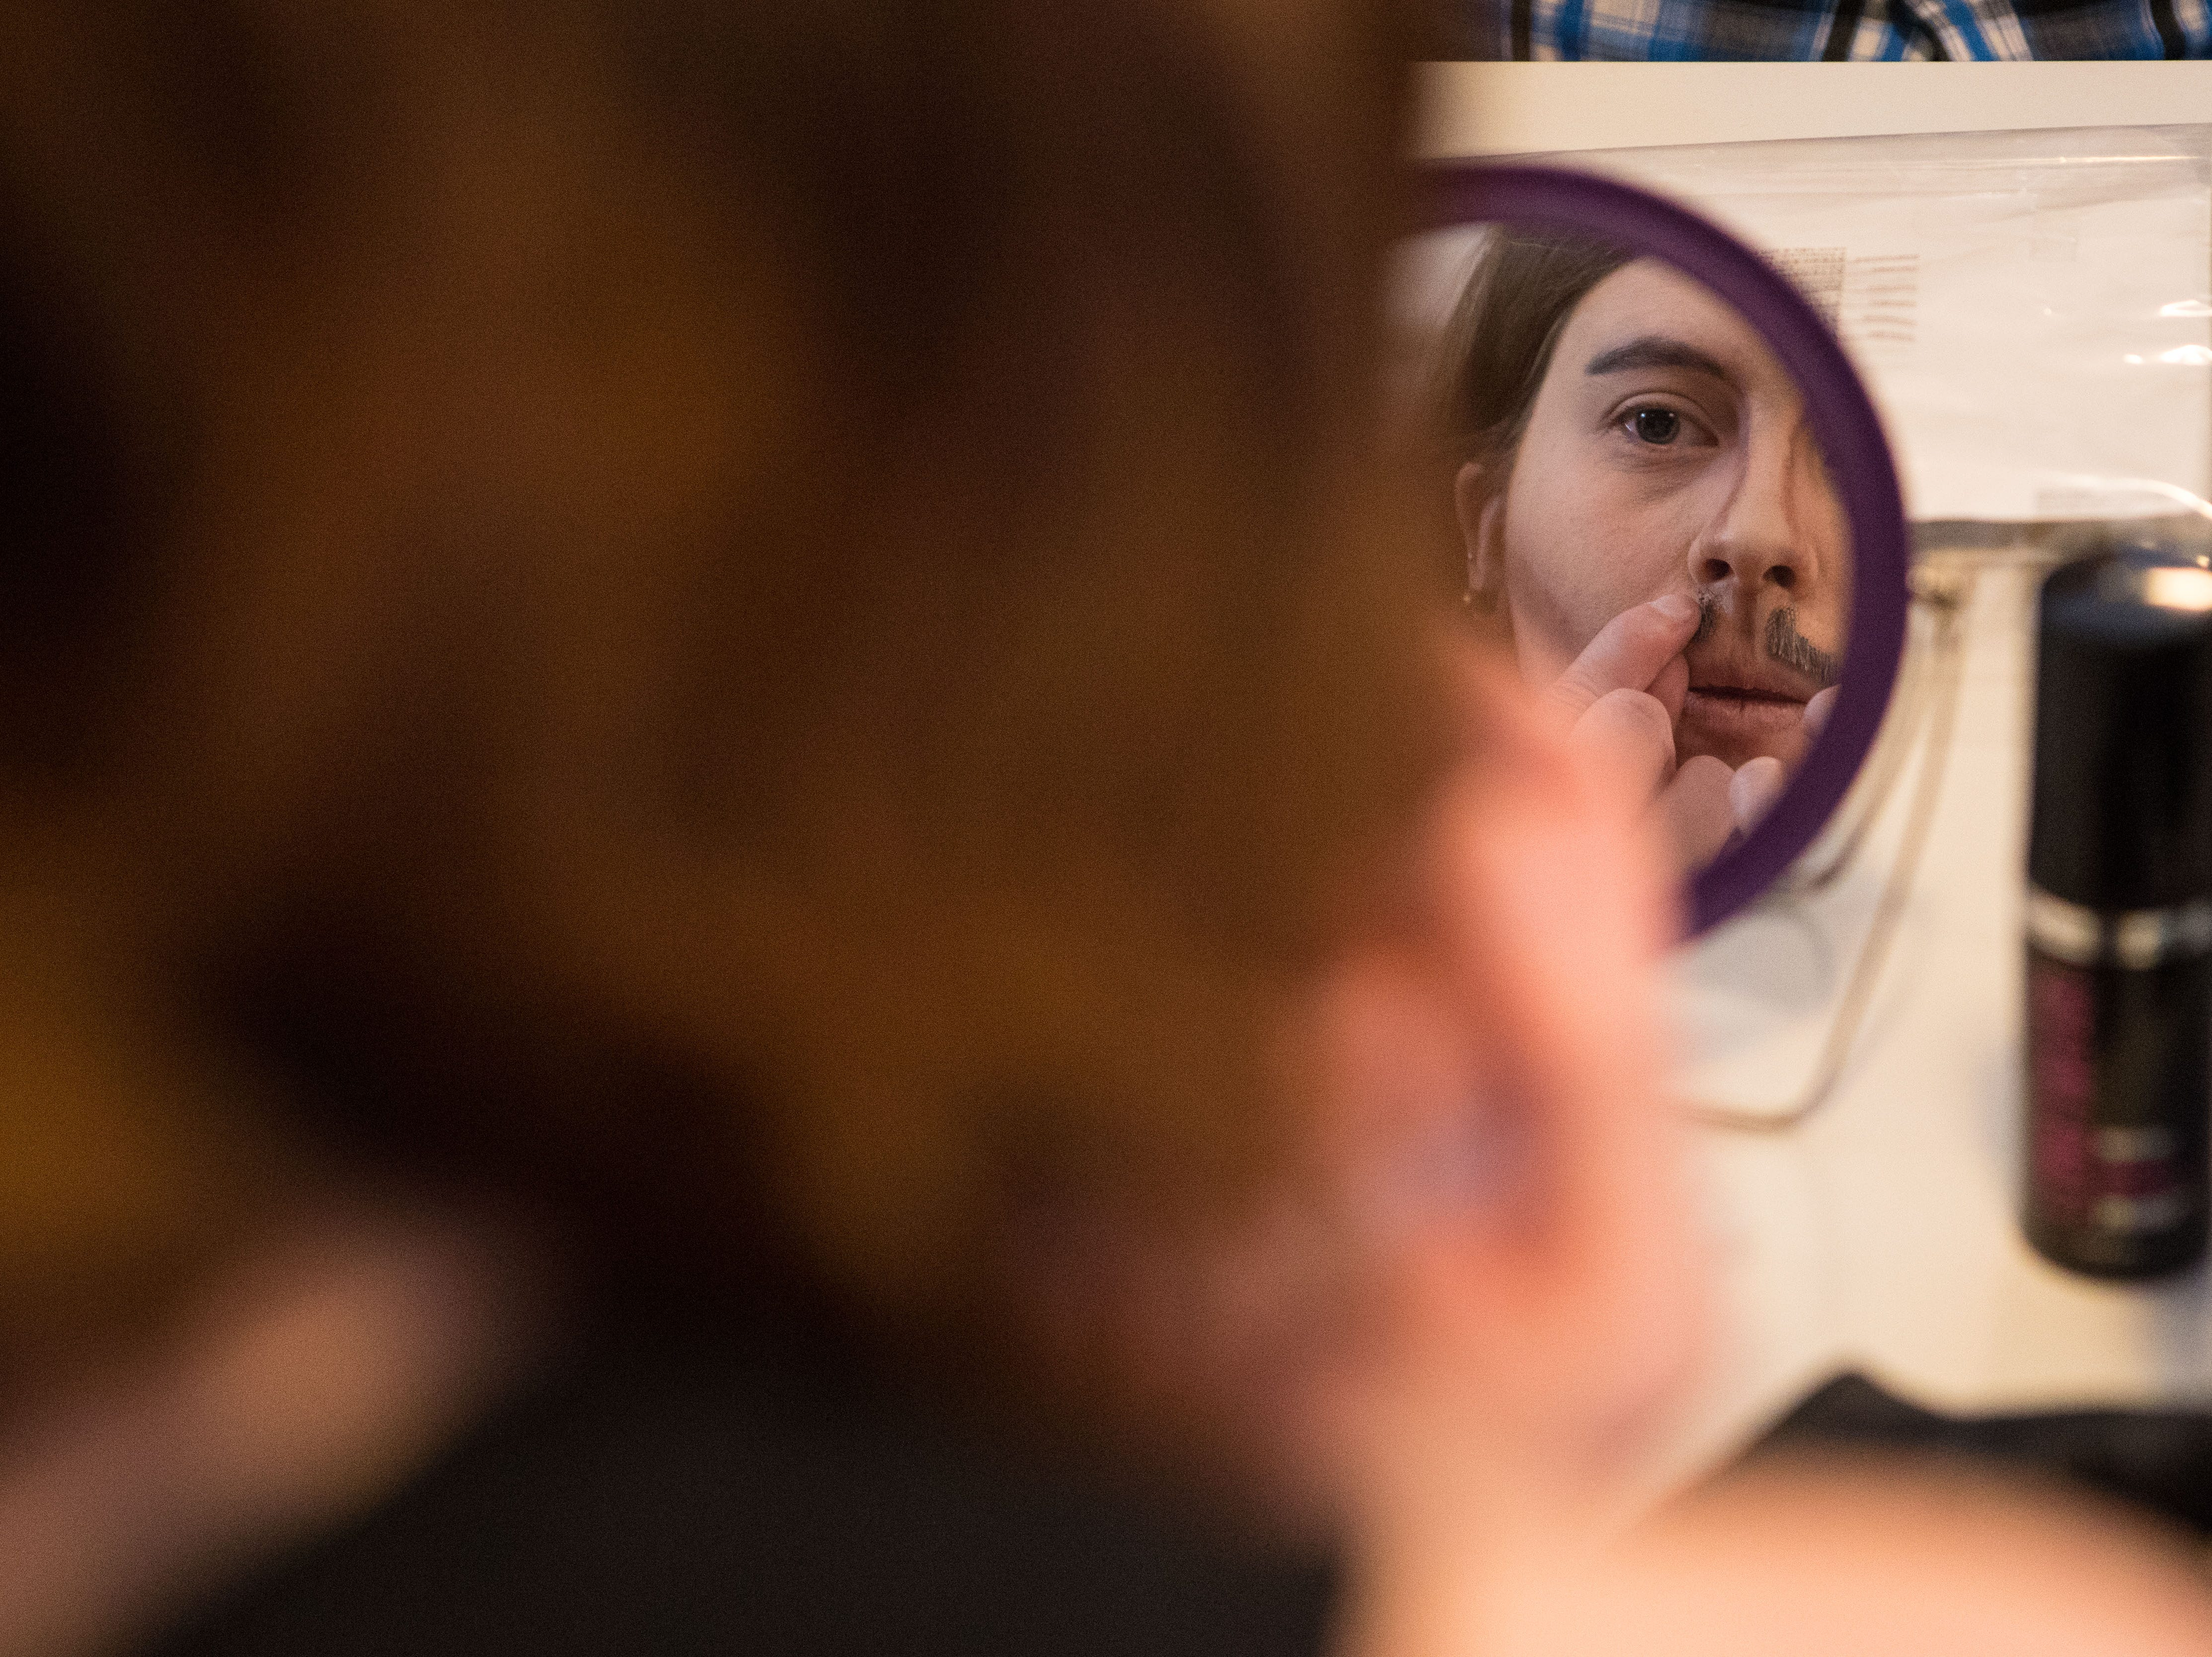 Ashlee Reck (drag name: Oliver Clozoffin) puts her mustache on during drag king rehearsal in Sioux Falls, S.D., Saturday, Jan. 26, 2019.